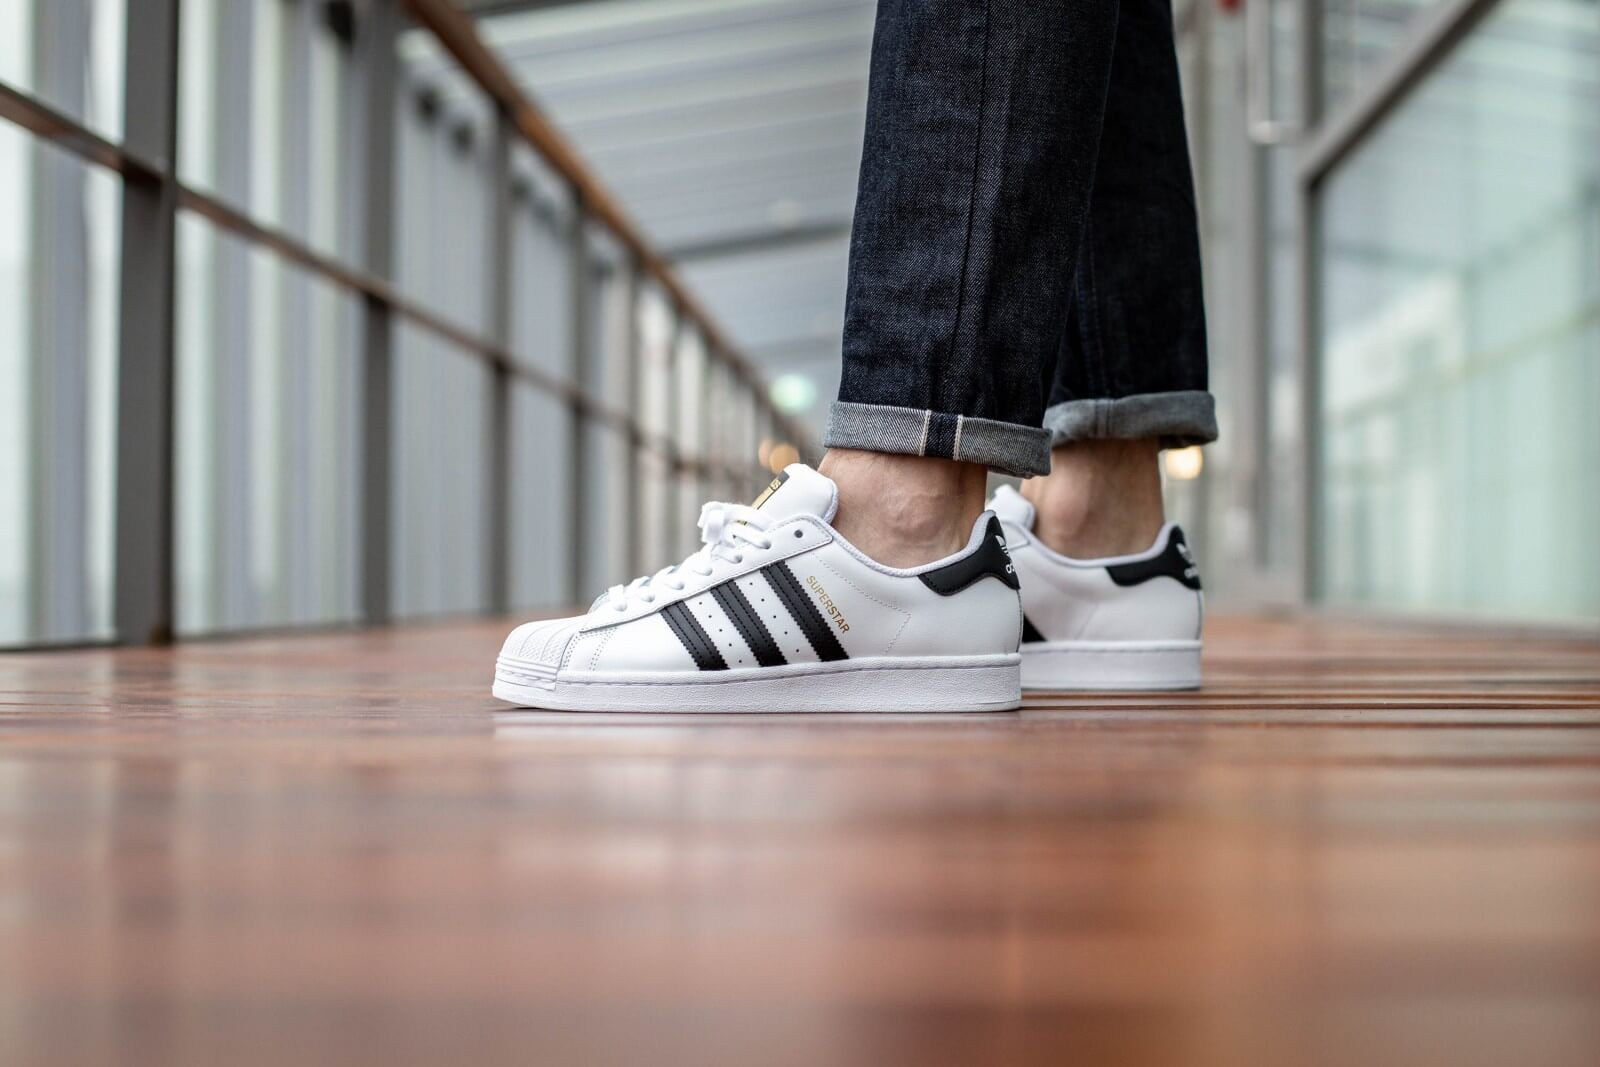 Adidas Superstar Cloud WhiteCore Black EG4958